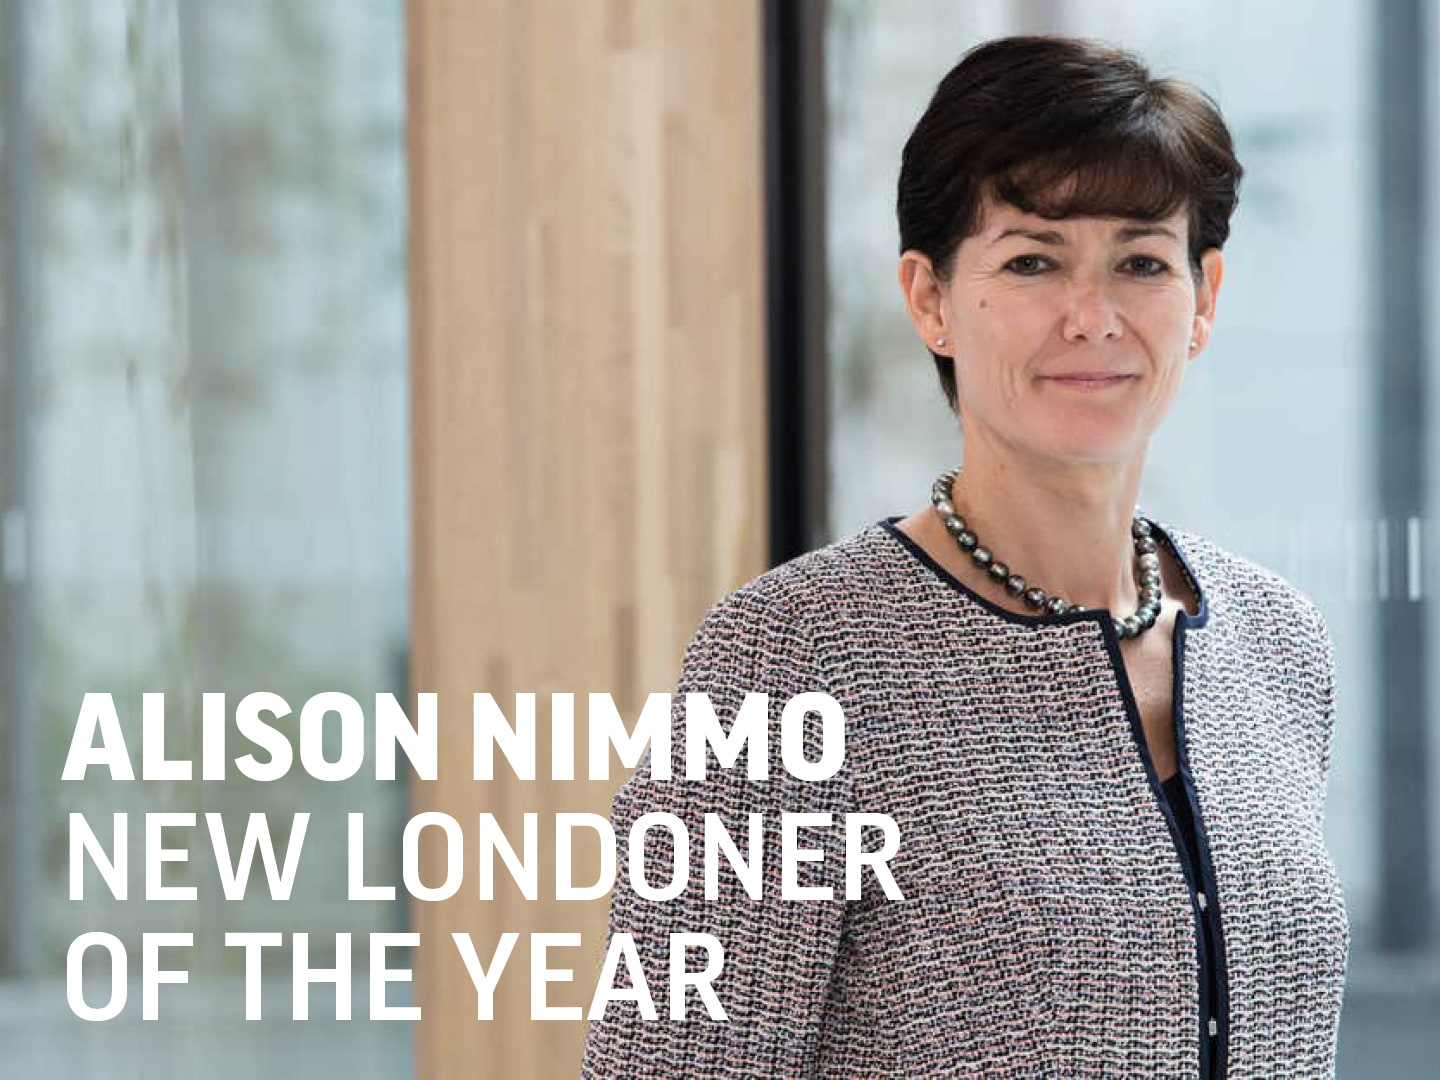 Alison Nimmo, New Londoner of the Year 2020